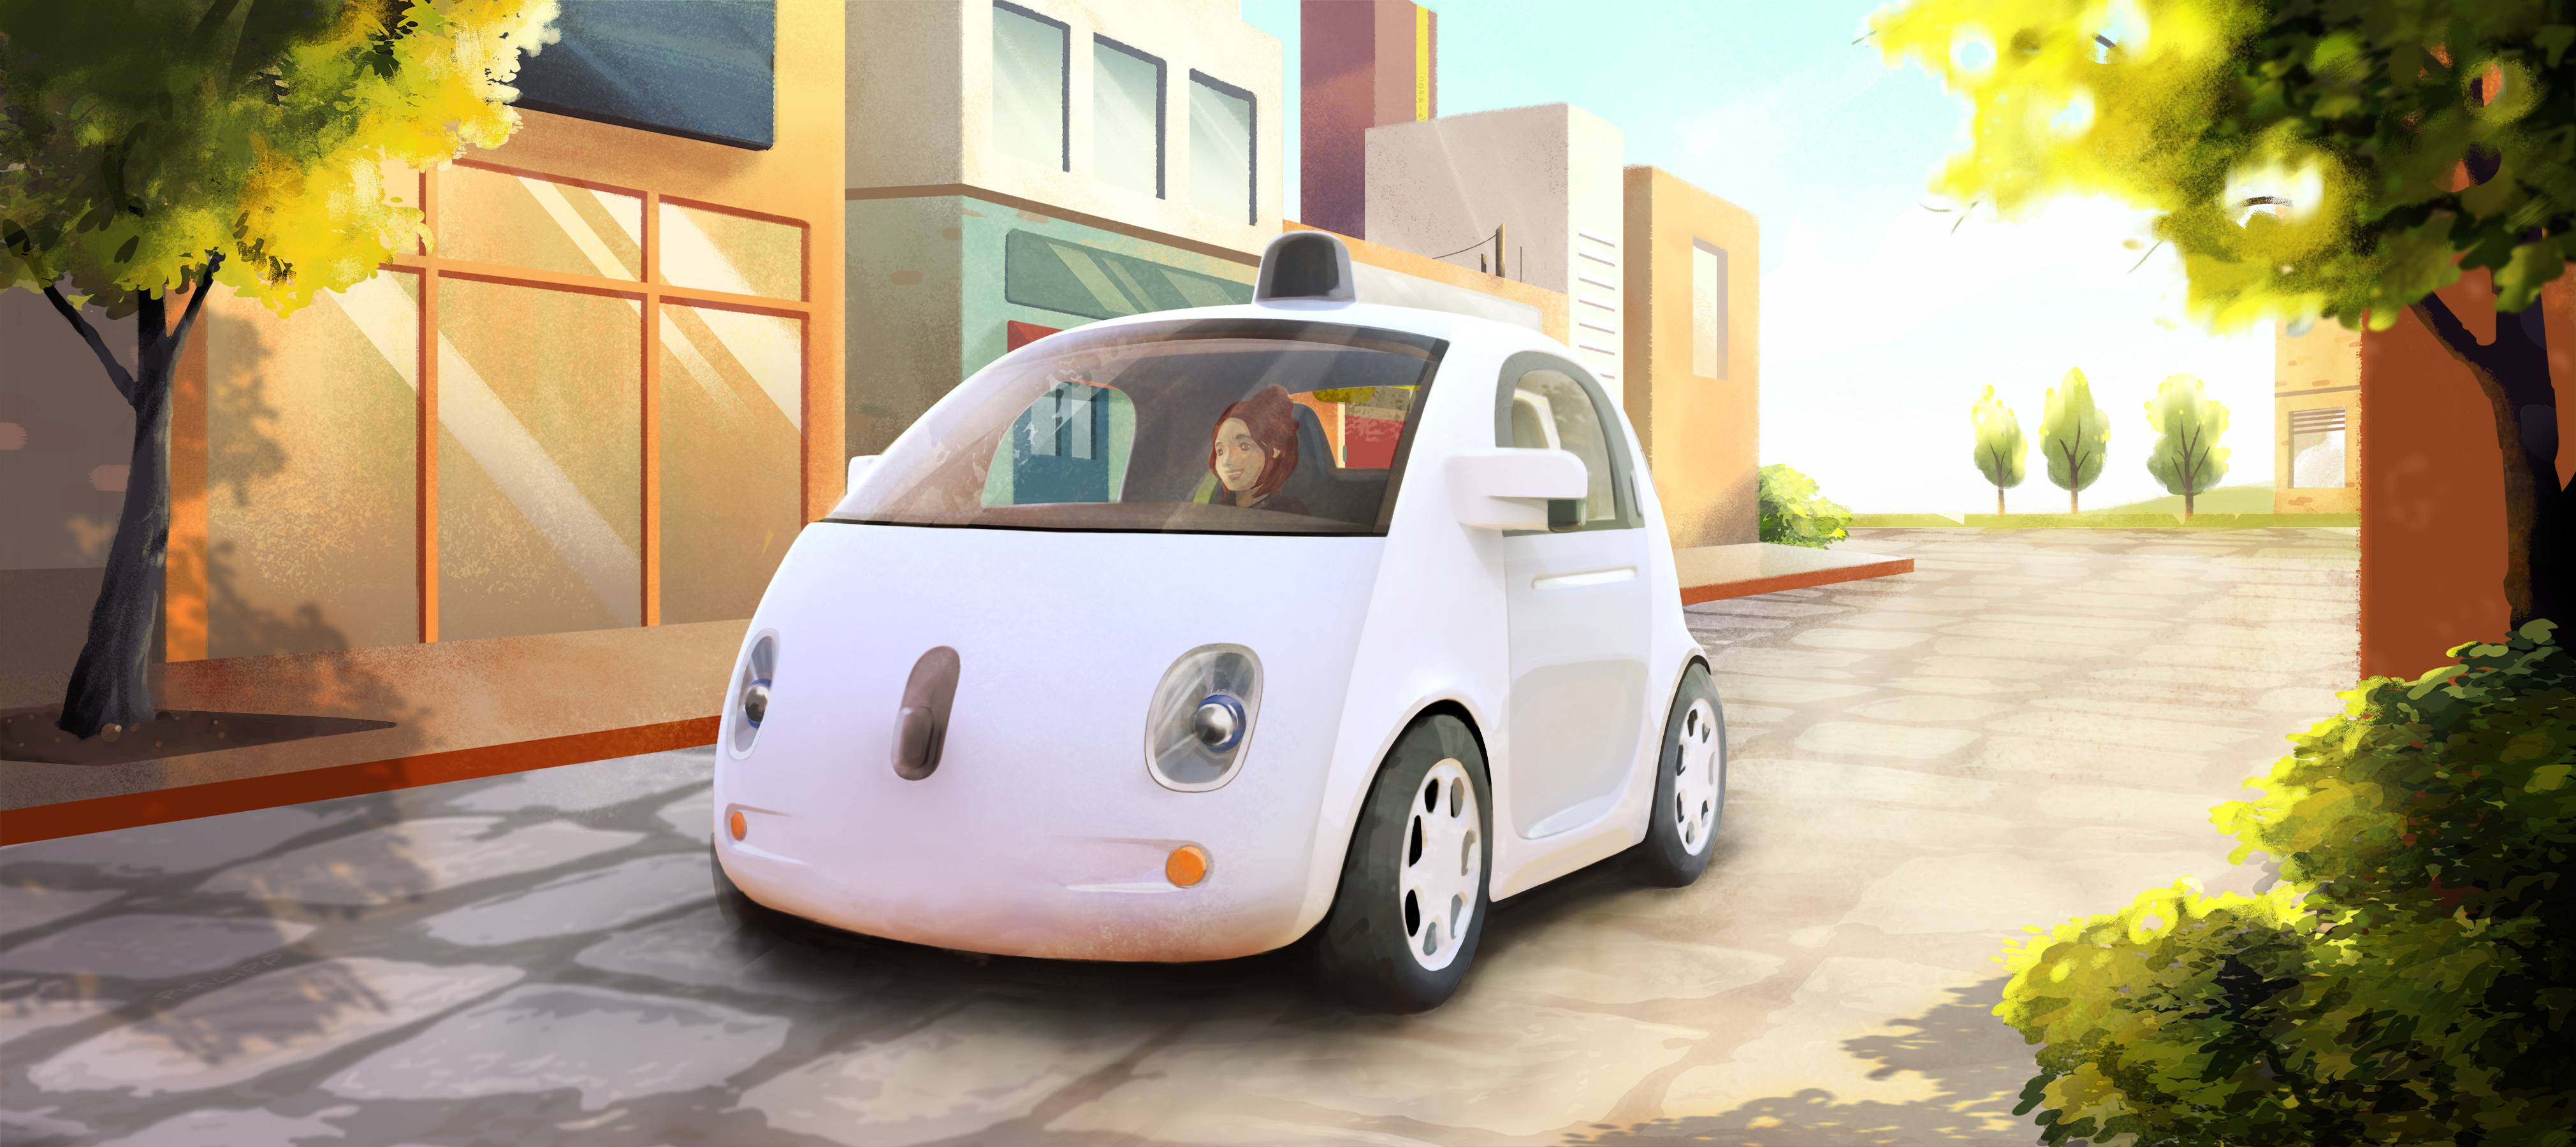 An artistic rendering of Google's self-driving car. The two-seater won't be sold publicly, but Google said it hopes by this time next year, 100 prototypes will be on public roads.